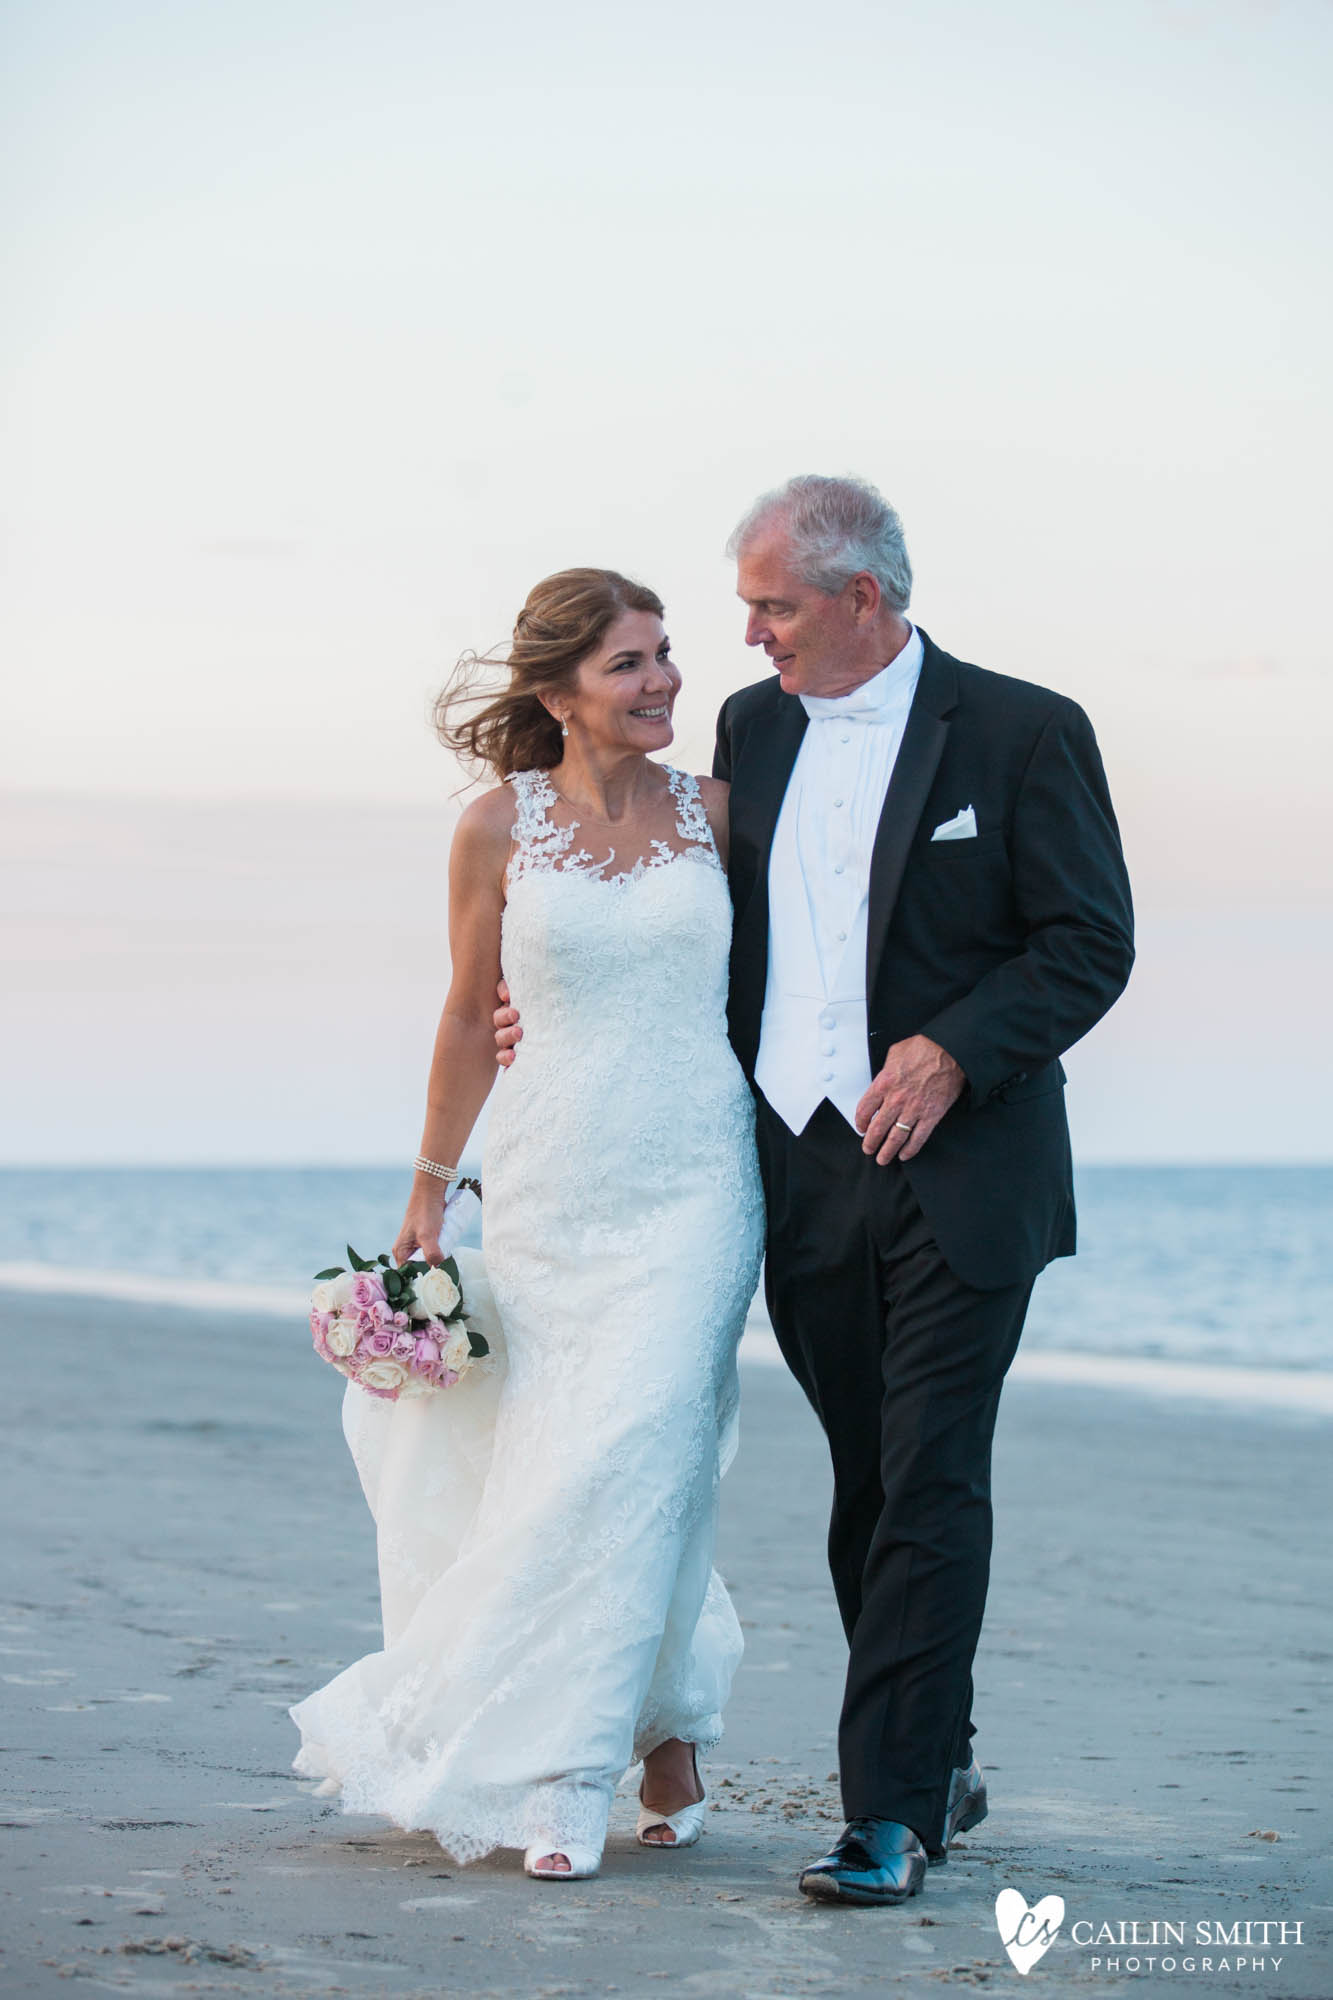 Kalina_Andy_Jekyll_Island_Westin_Hotel_Wedding_Photography_0055.jpg